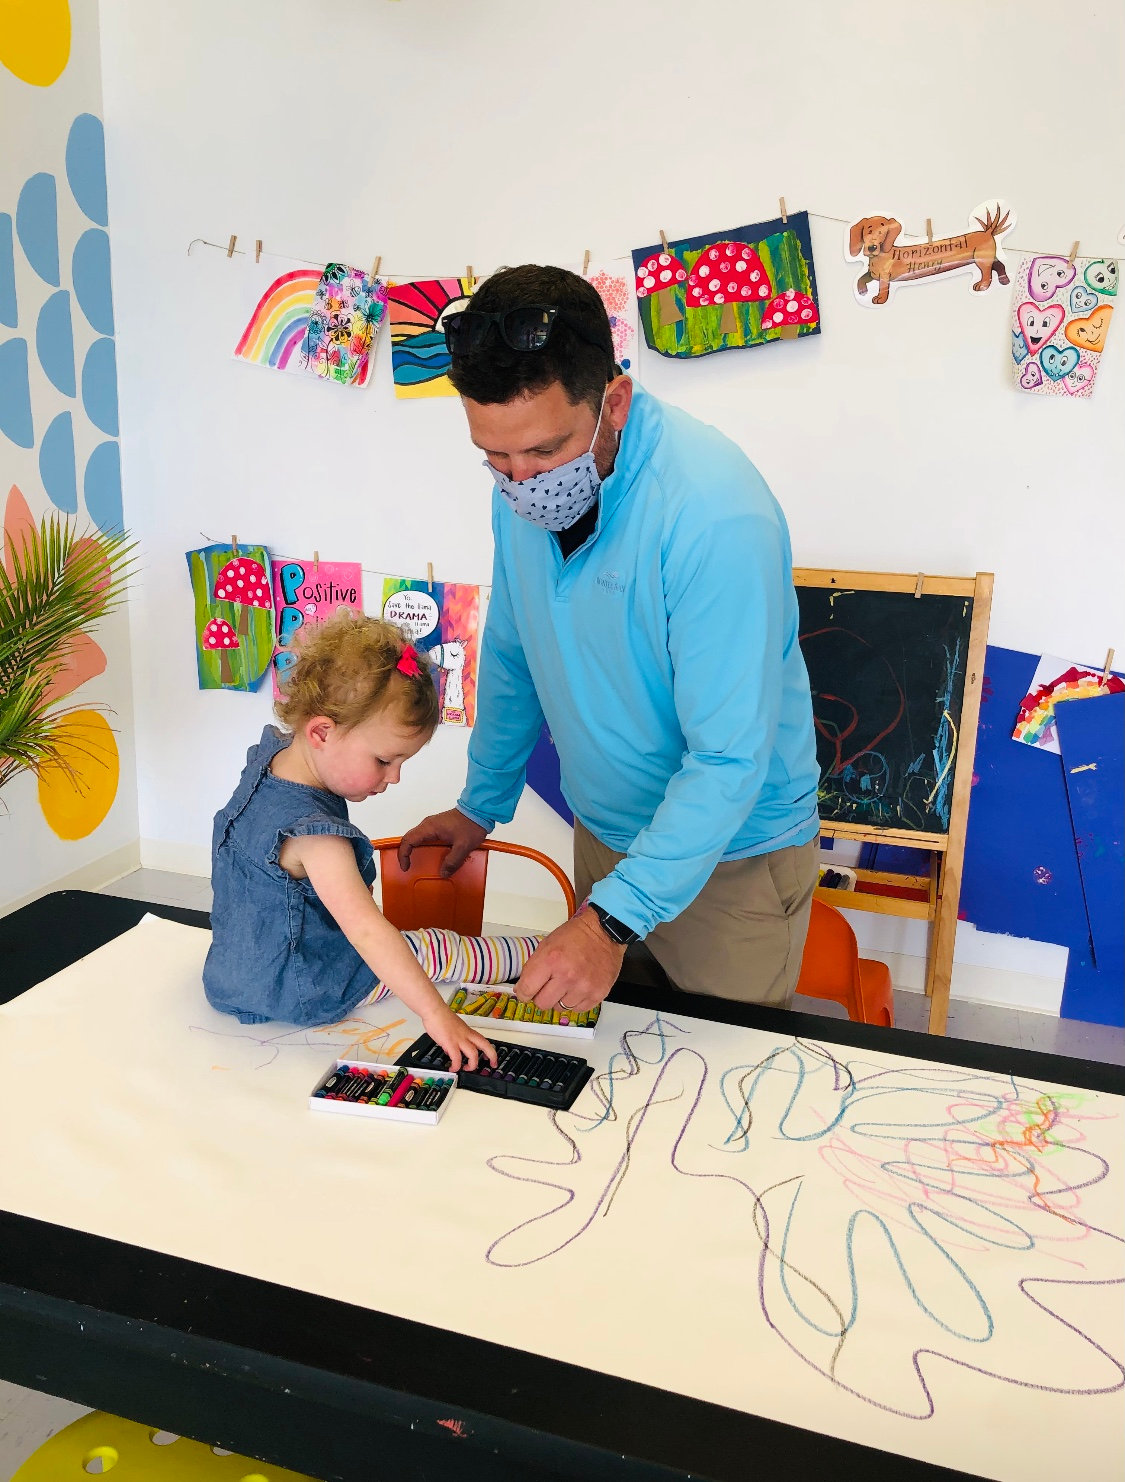 Family Pop-Up: Large Family Murals